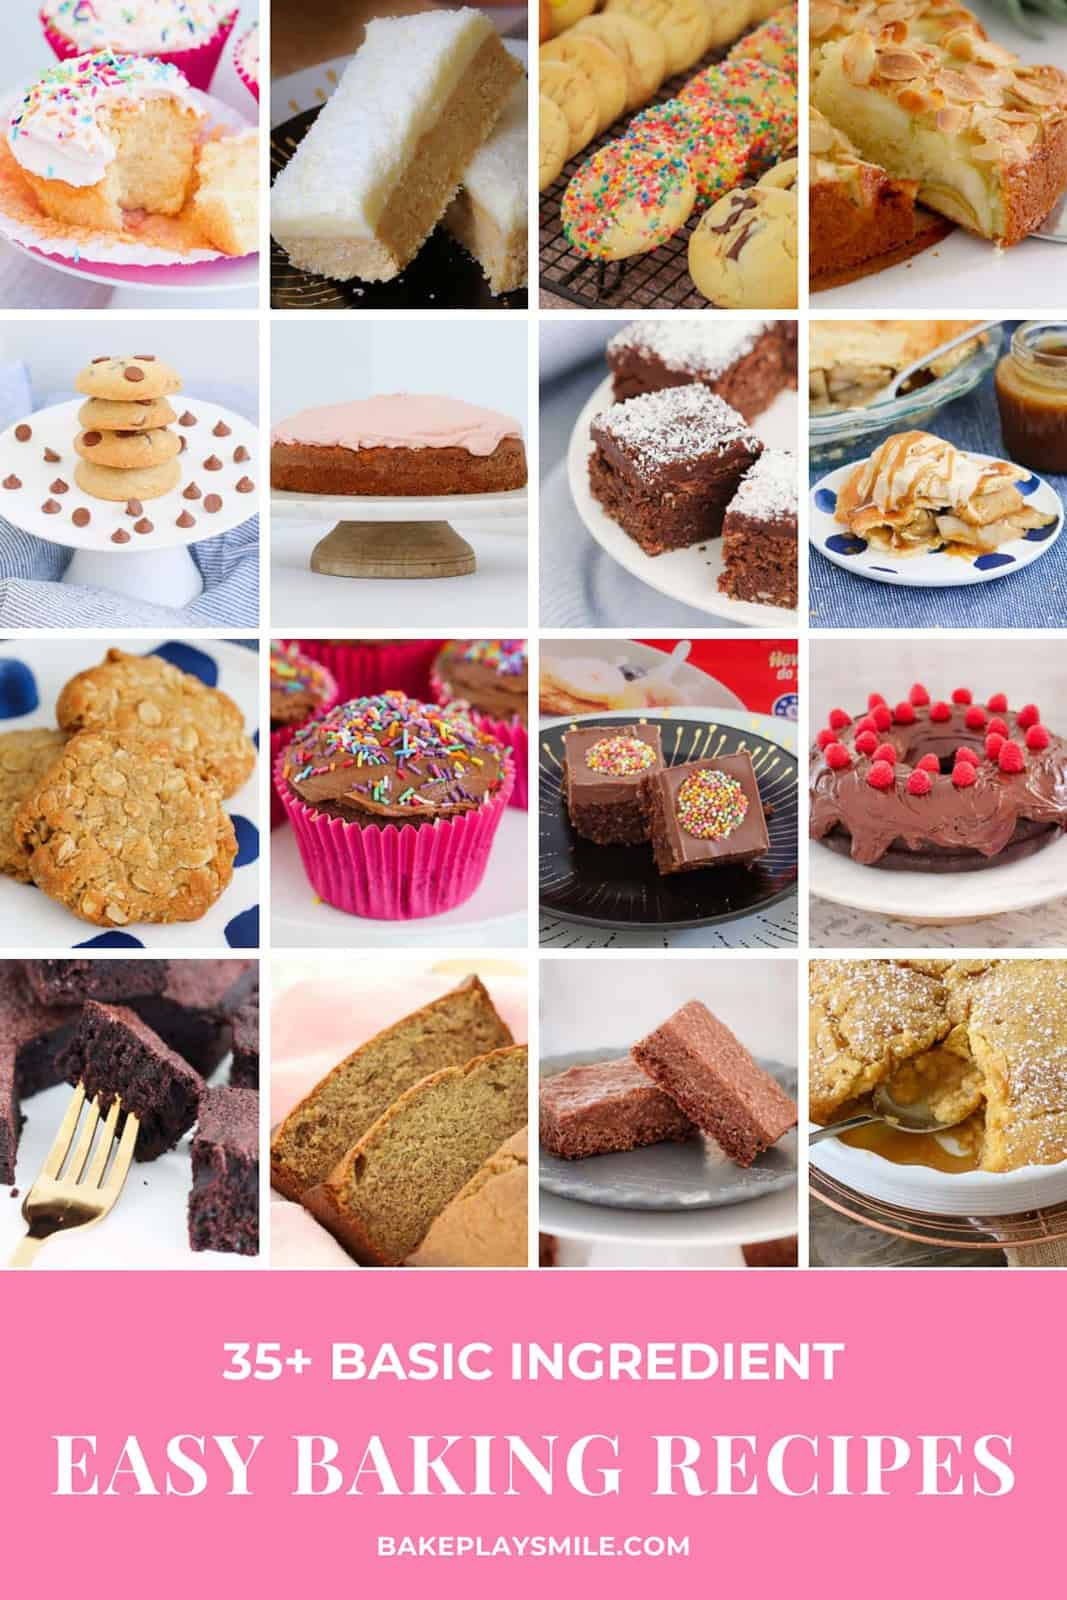 A collage of sweet baking recipes made using basic pantry and refrigerator ingredients.